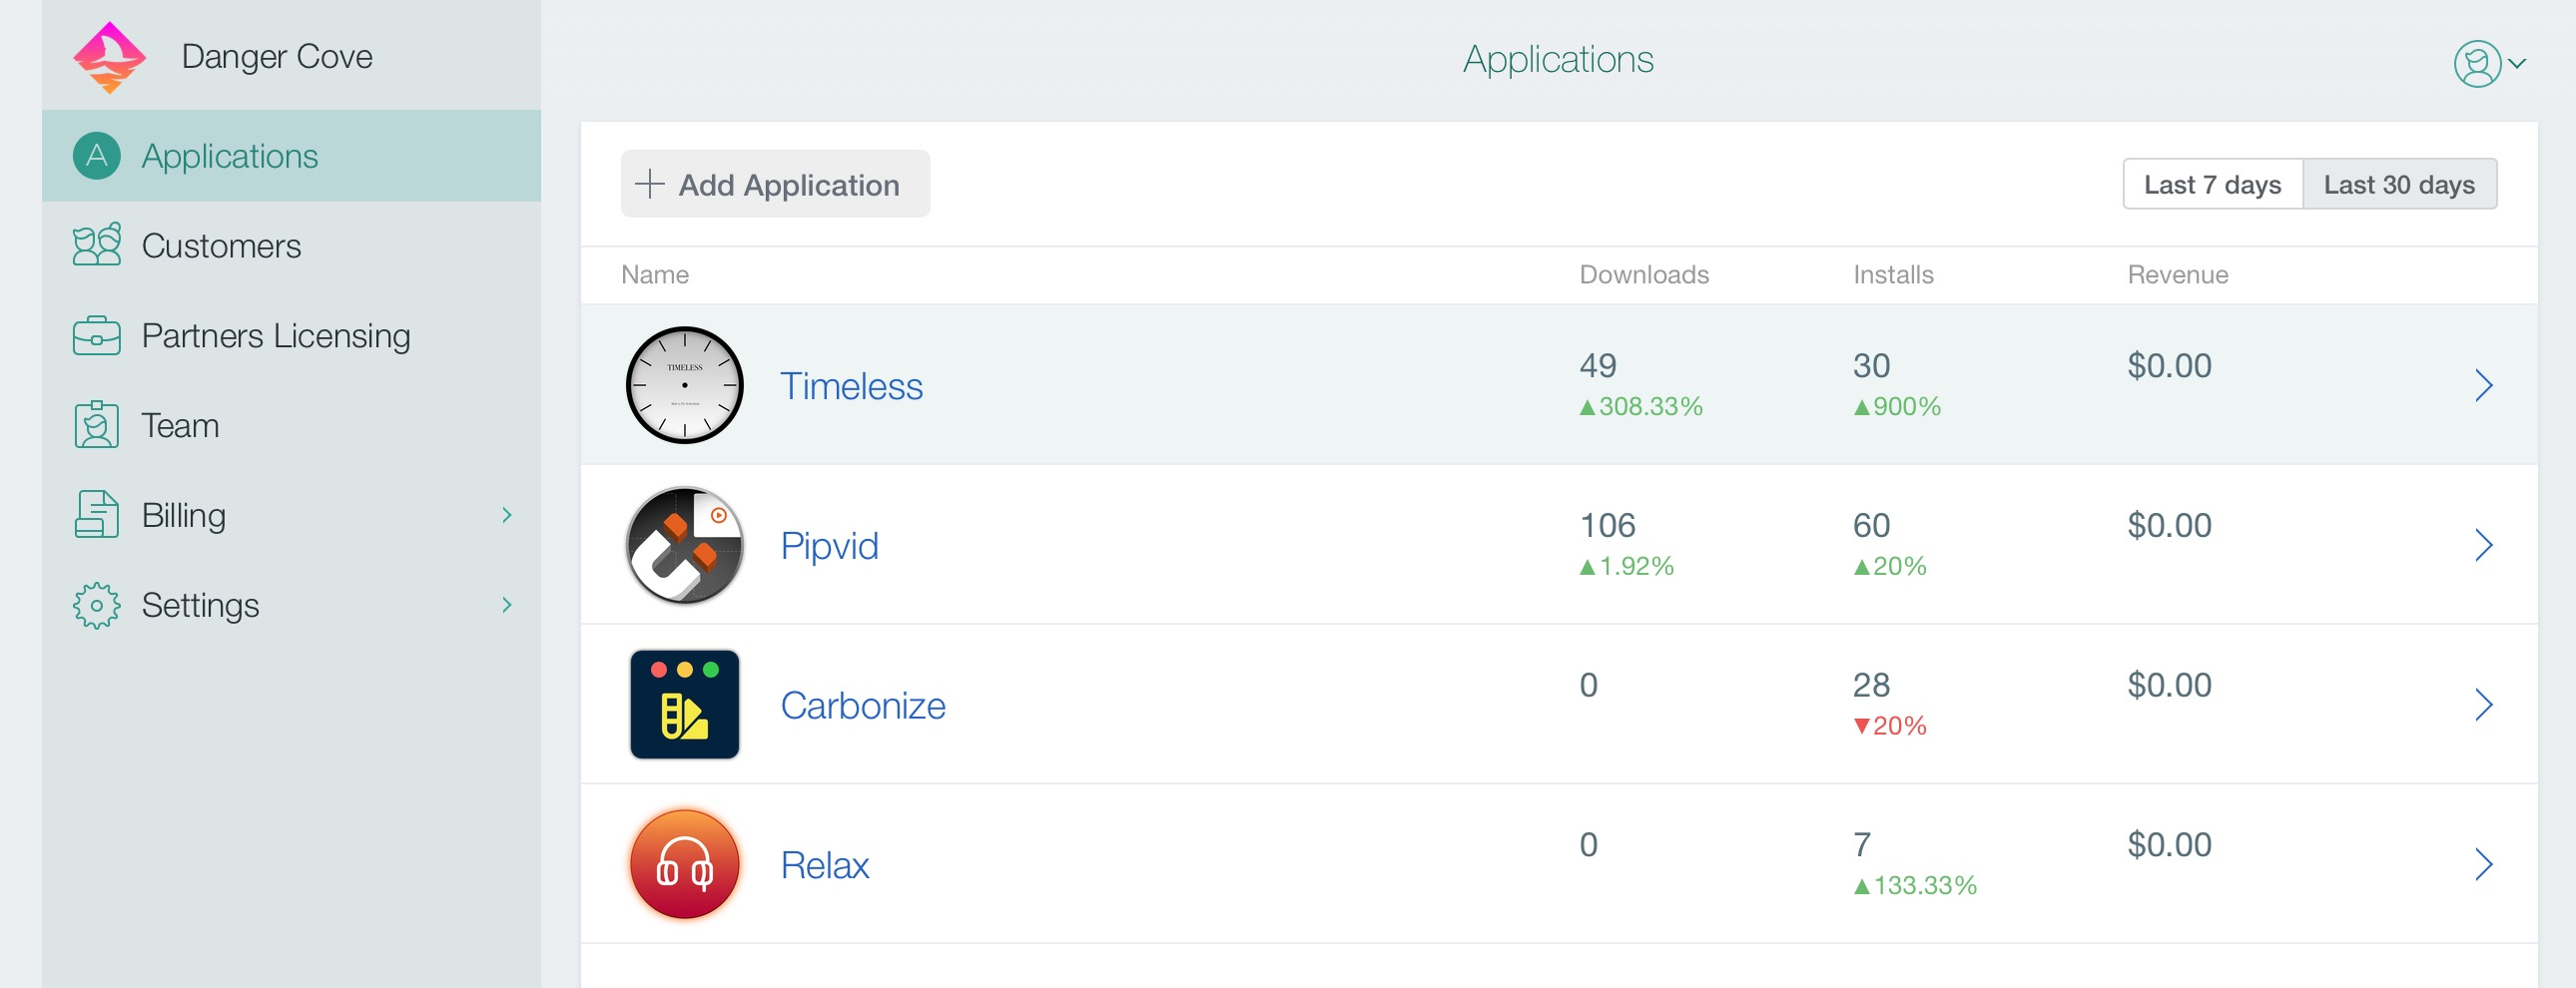 A screenshot of my DevMate dashboard, showing about 50 downloads and 30 installs for Timeless in the past 30 days and 100 downloads and 60 installs for Pipvid